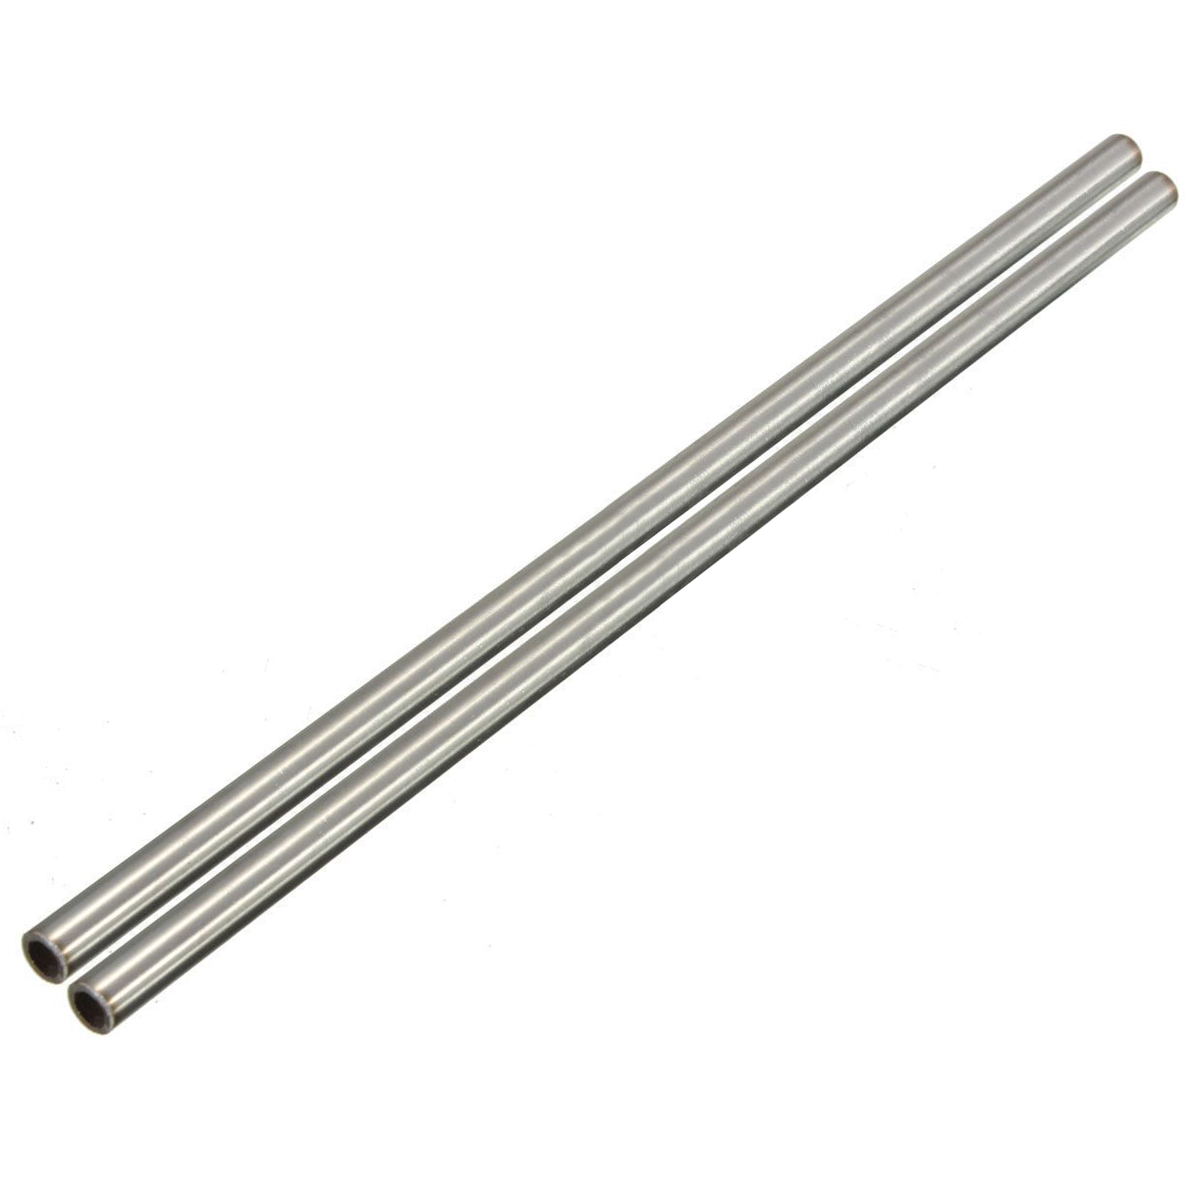 1pc/2pcs Mayitr Silver 304 Stainless Steel Capillary Tube Corrosion Resistant Welded Tool OD 8mm ID 6mm Length 250mm 5pcs 304 stainless steel capillary tube 3mm od 2mm id 250mm length silver for hardware accessories